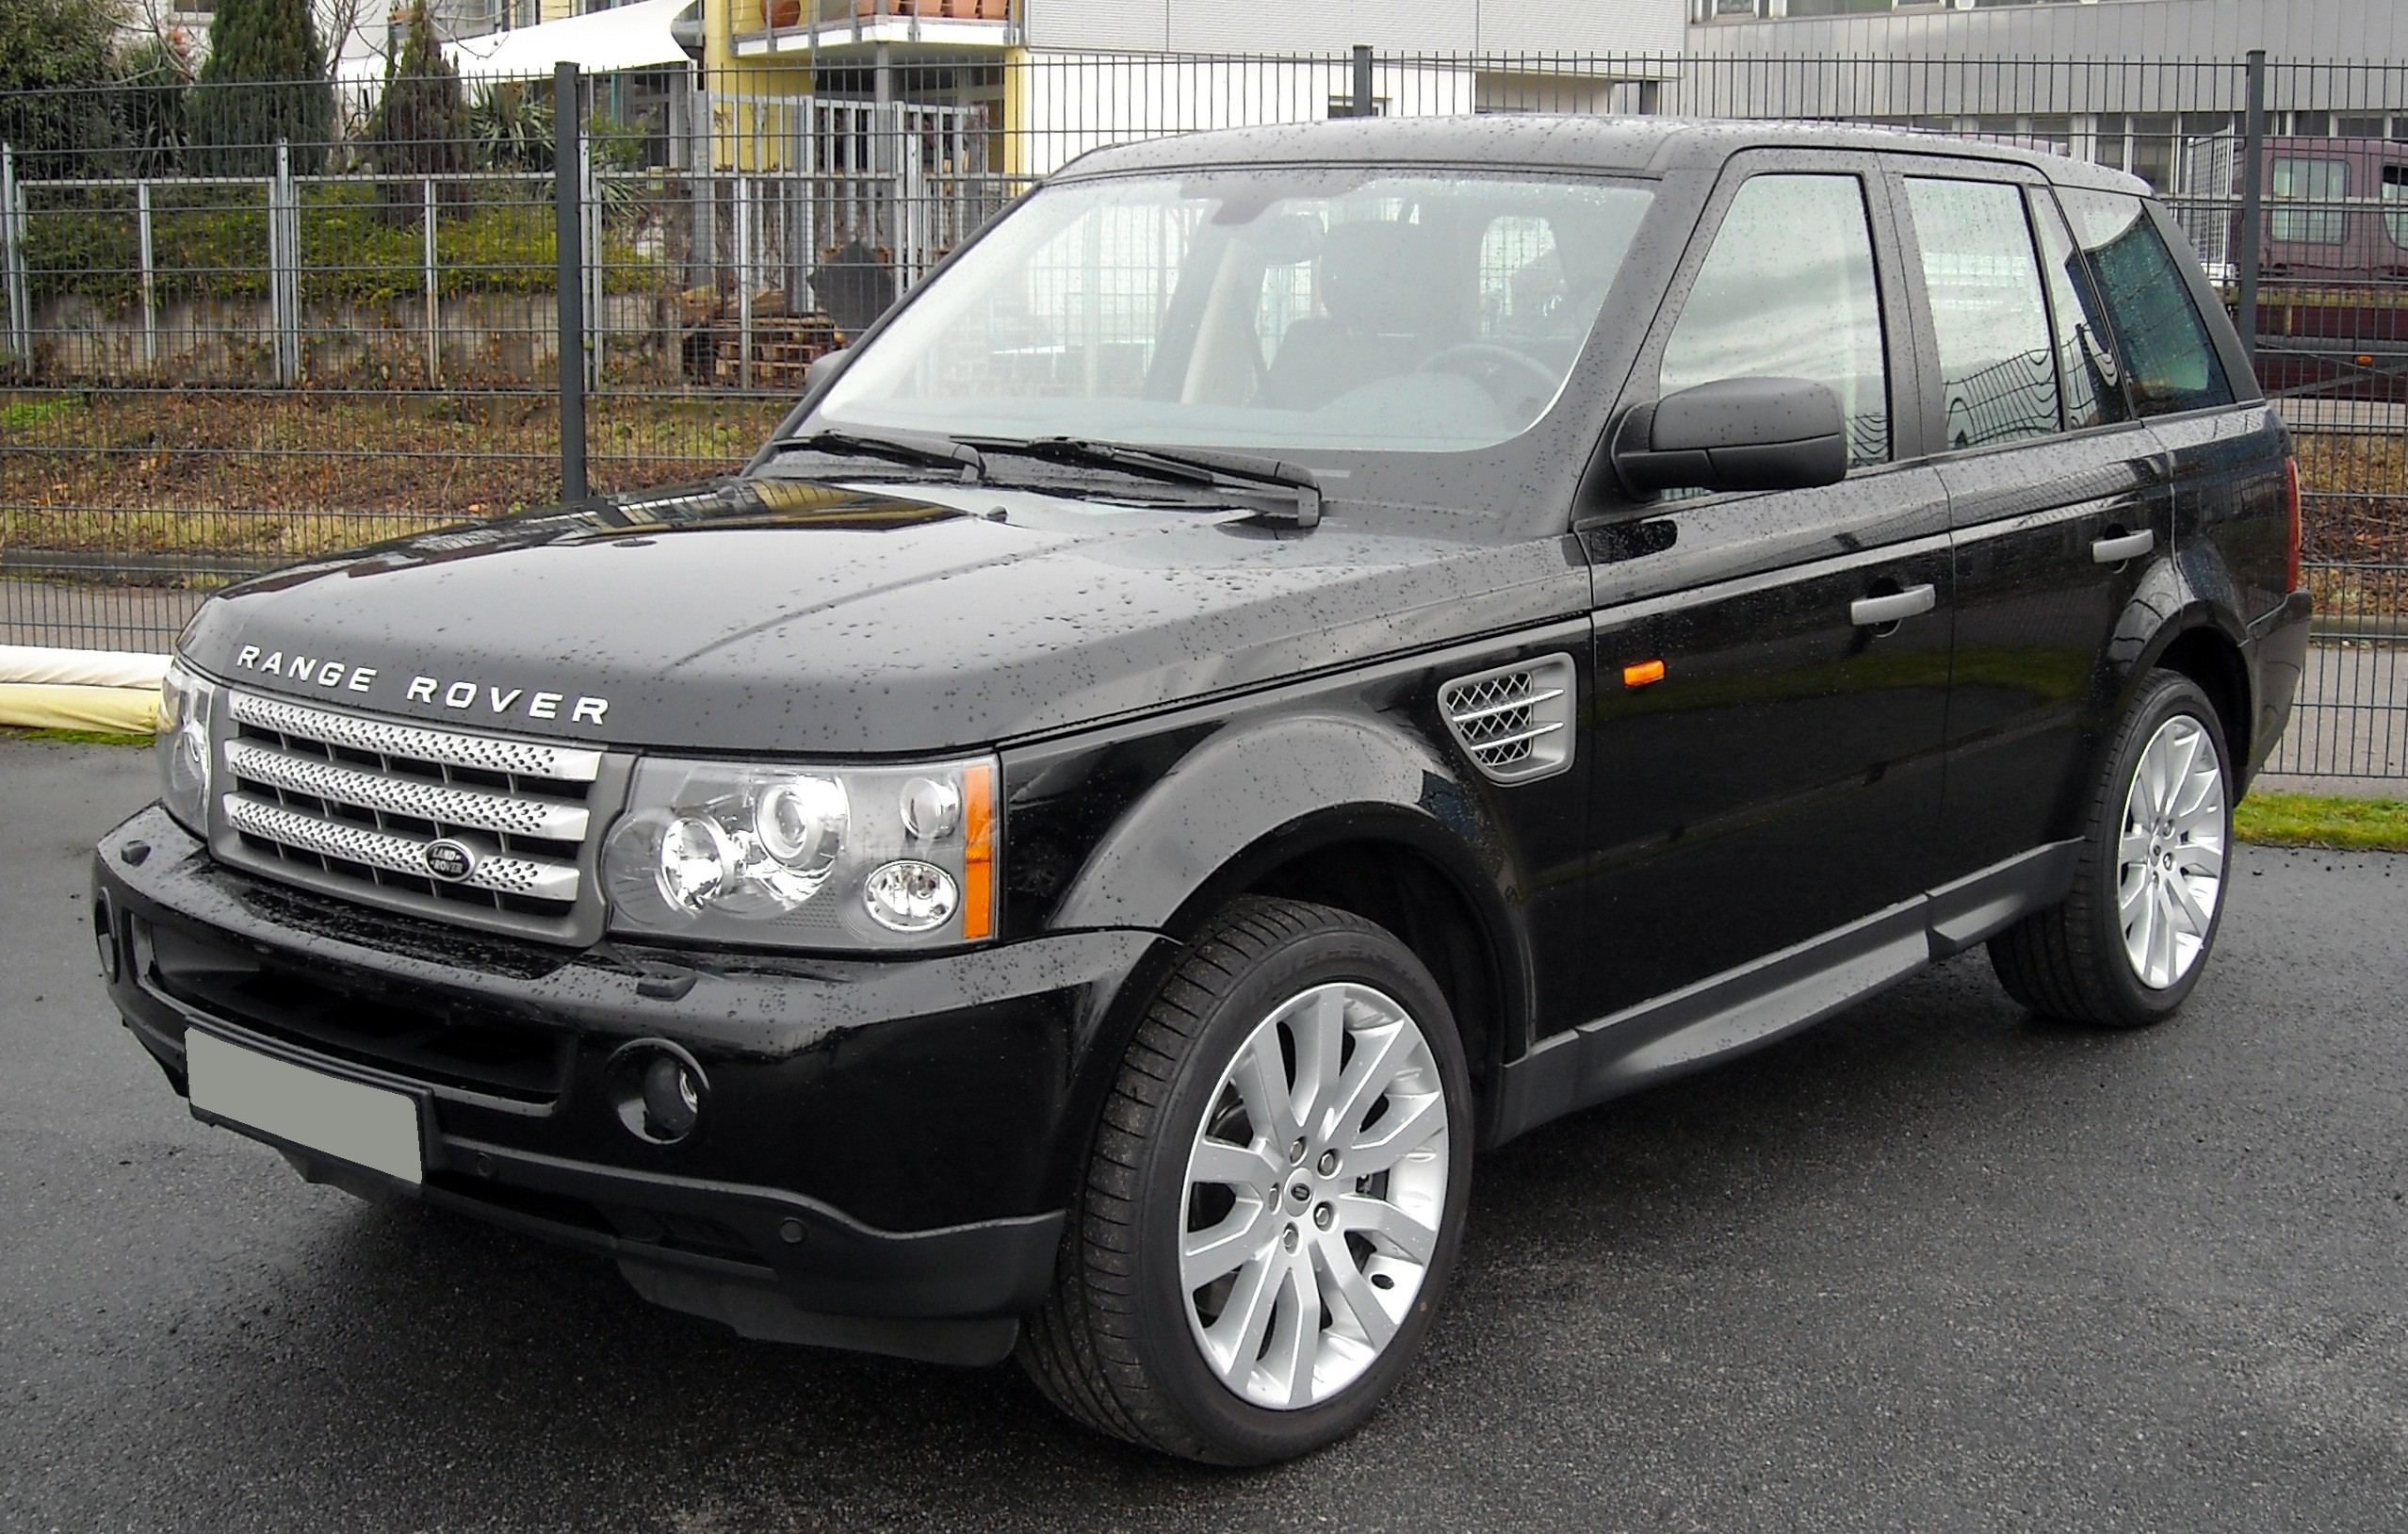 file range rover sport front wikimedia commons. Black Bedroom Furniture Sets. Home Design Ideas